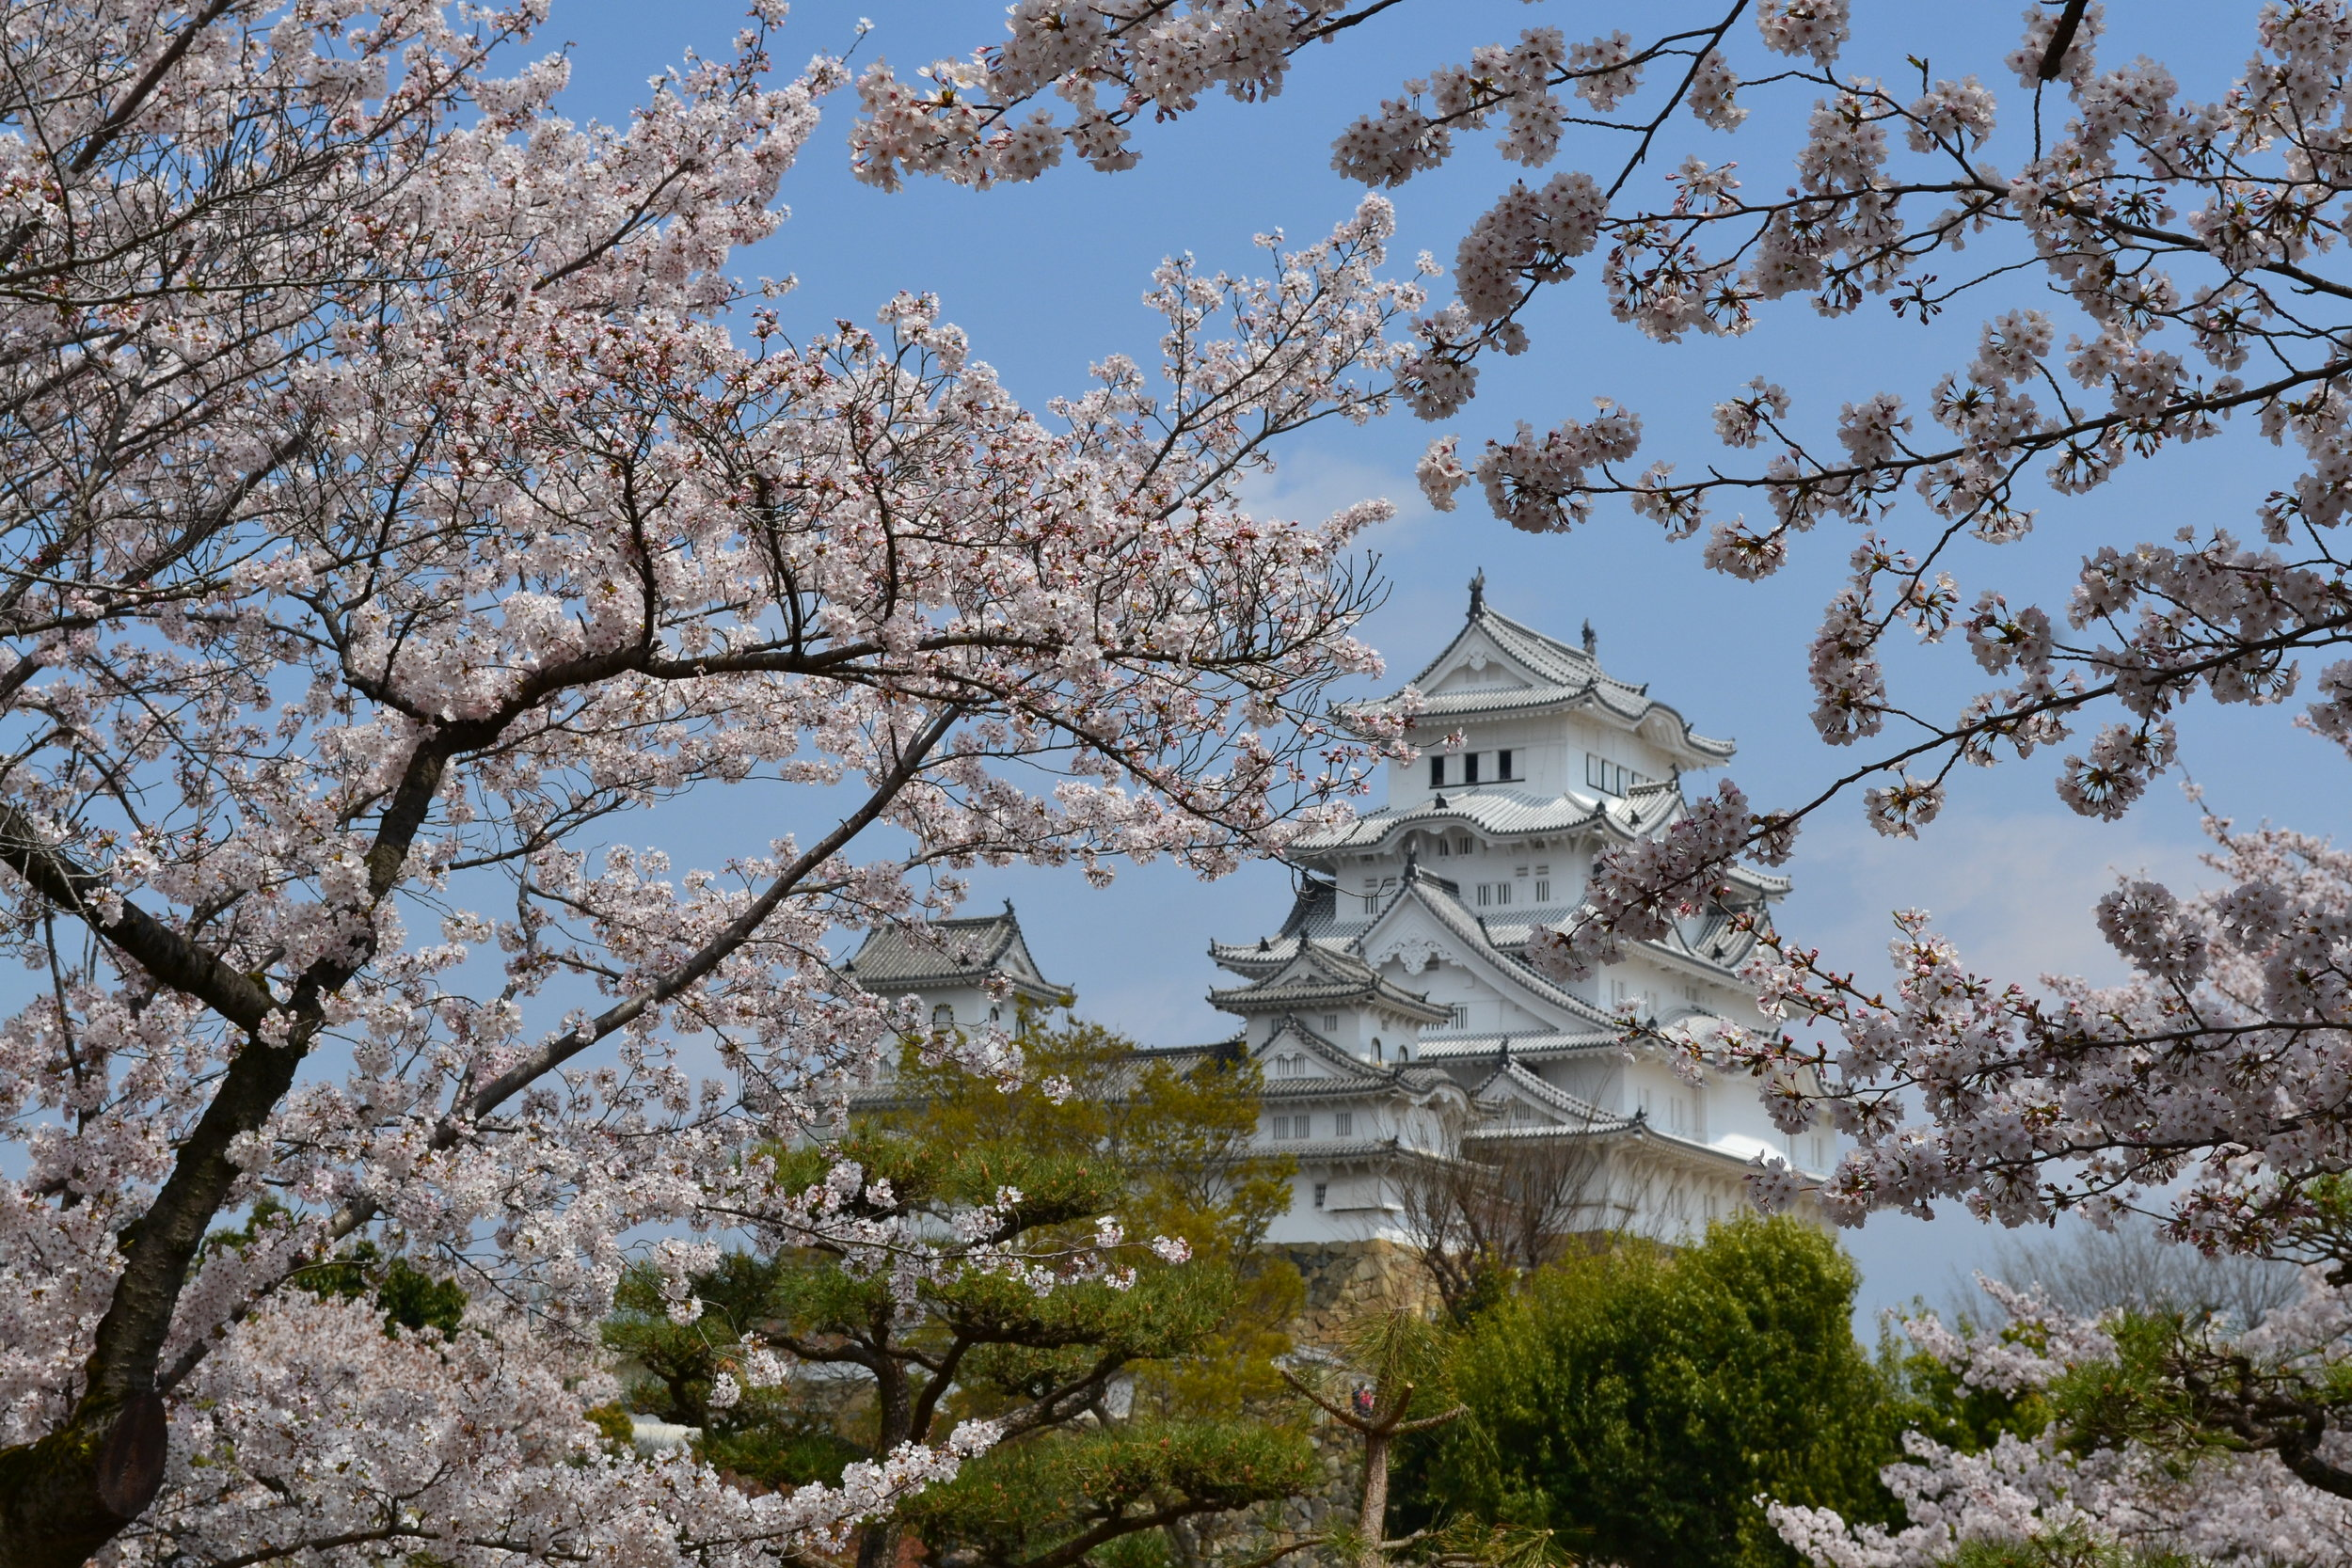 Finally, a look at Himeji Castle from the cherry blossom park next to it. A great trip to make if you're in the Hyogo region of Japan (past cities like Osaka and Kobe).